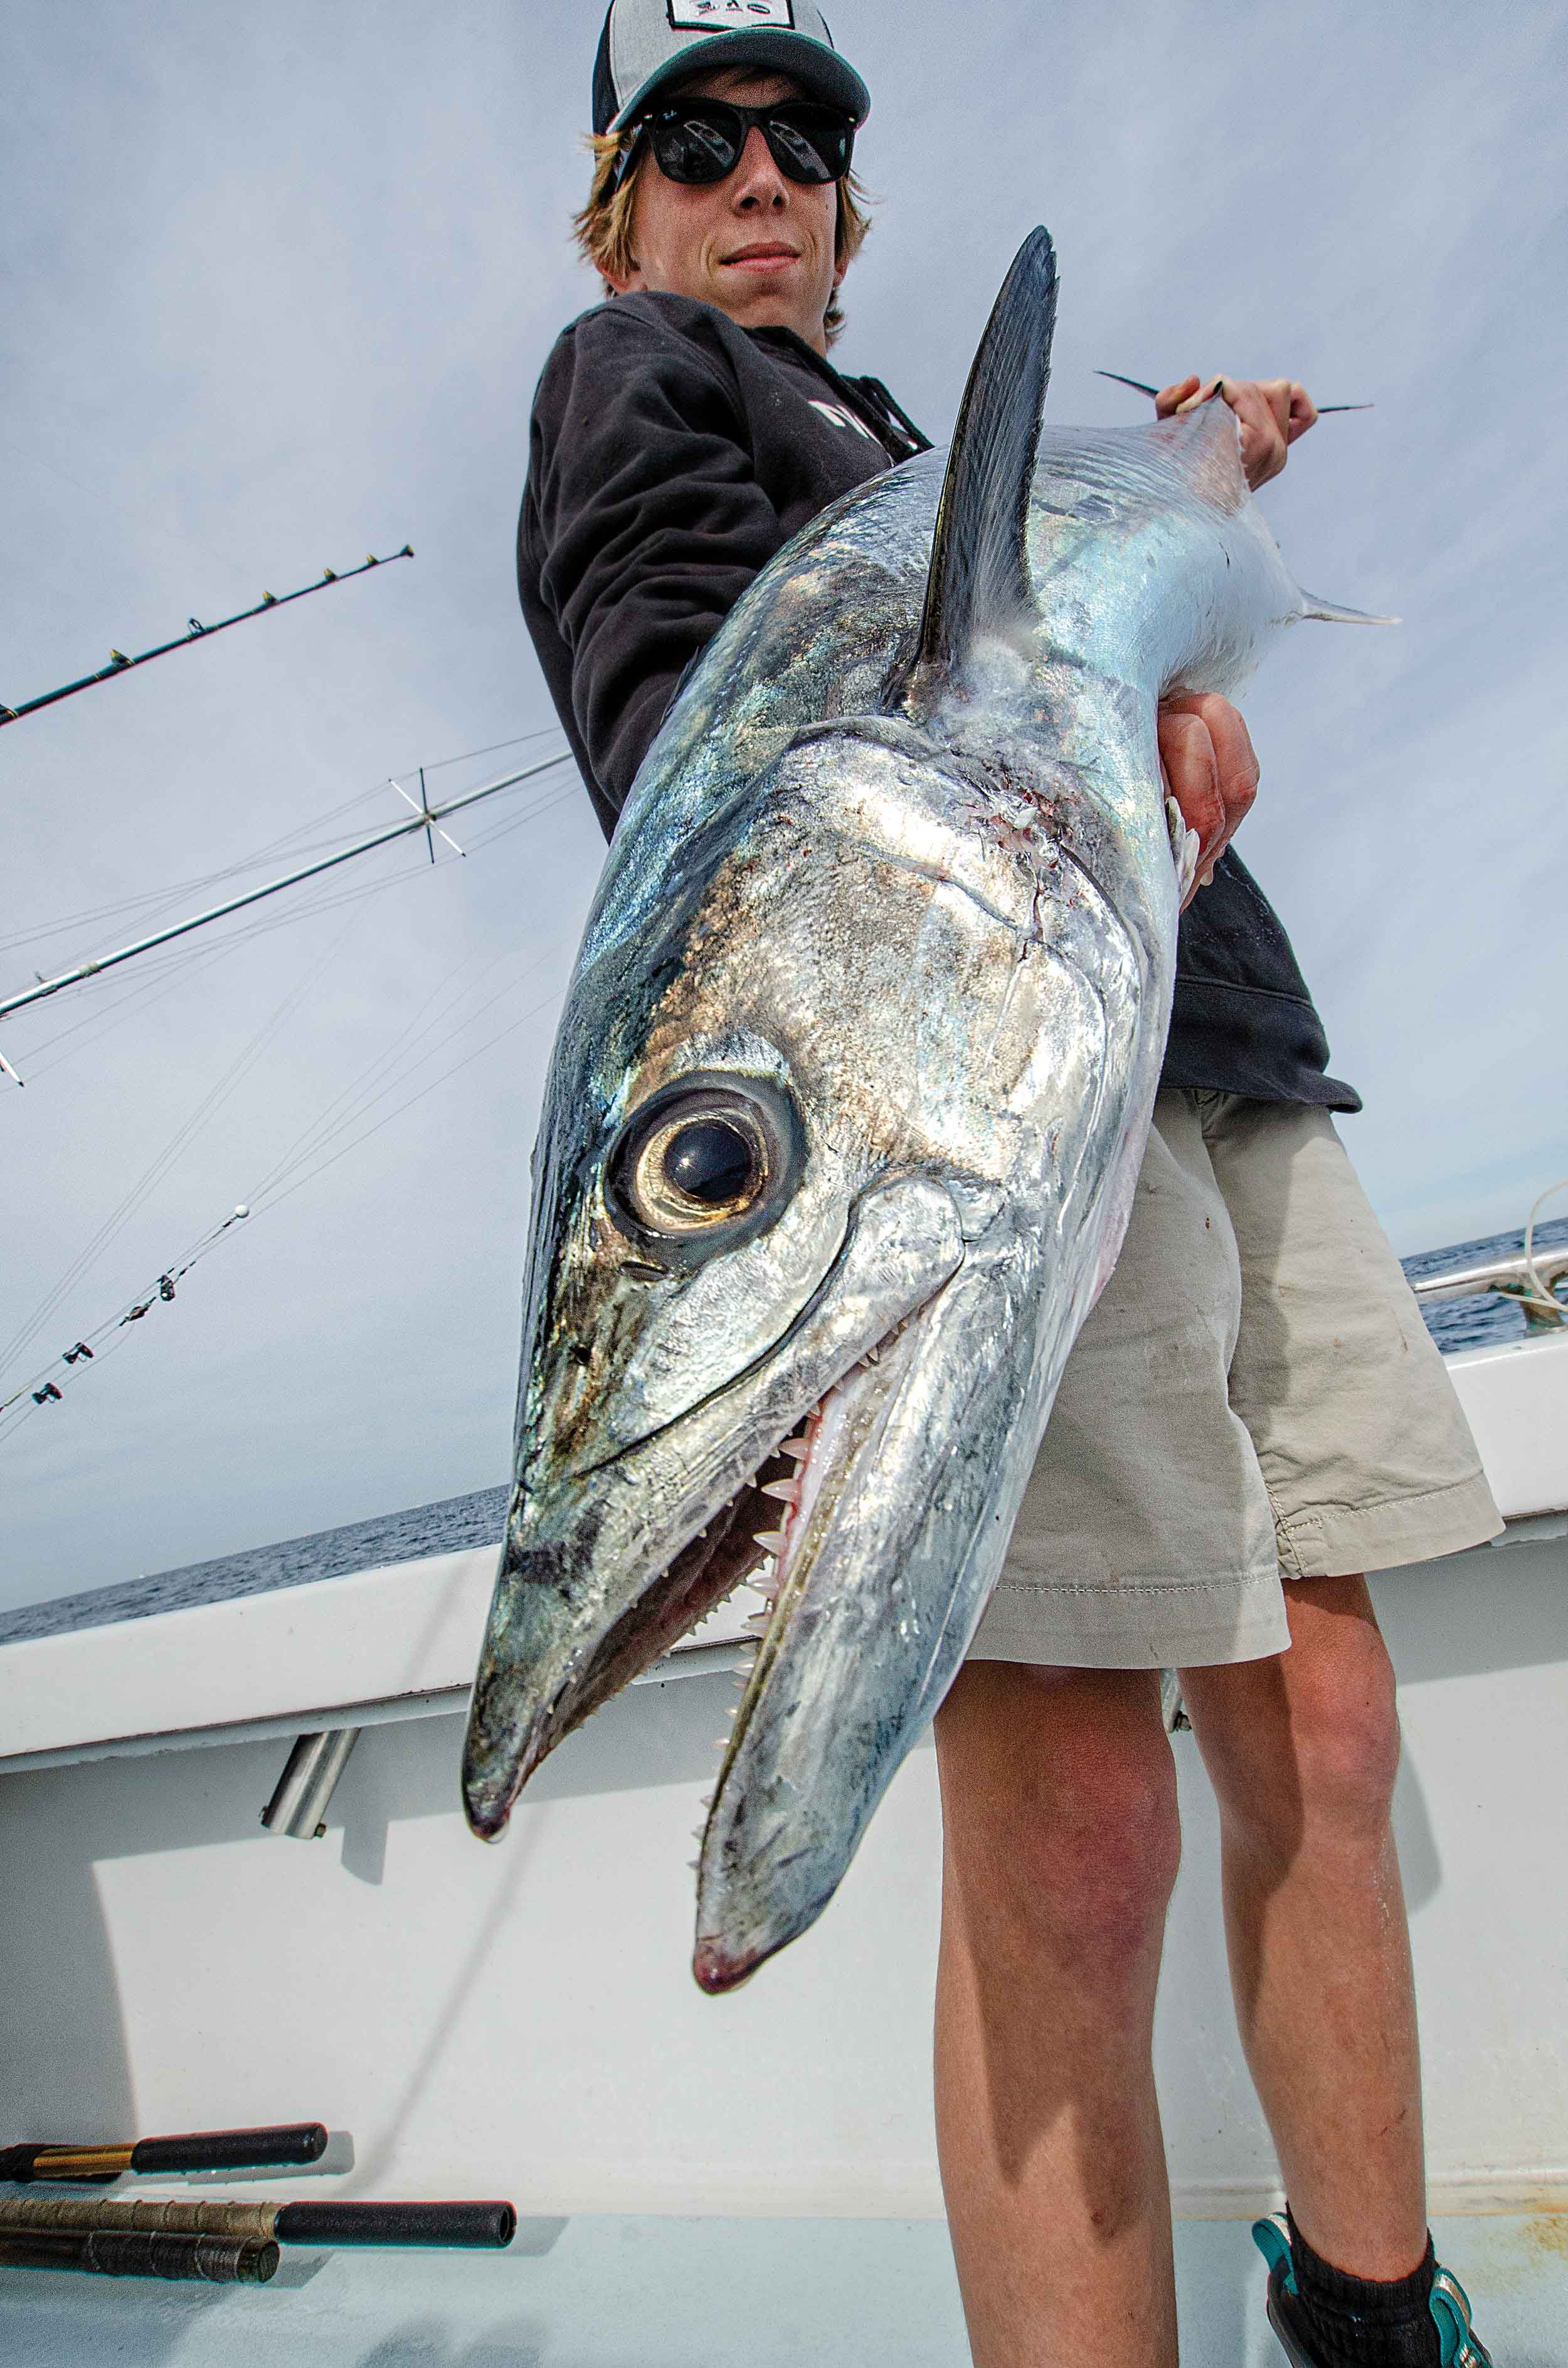 Formidable teeth allow king mackerel to kill or injure prey during high-speed attacks.